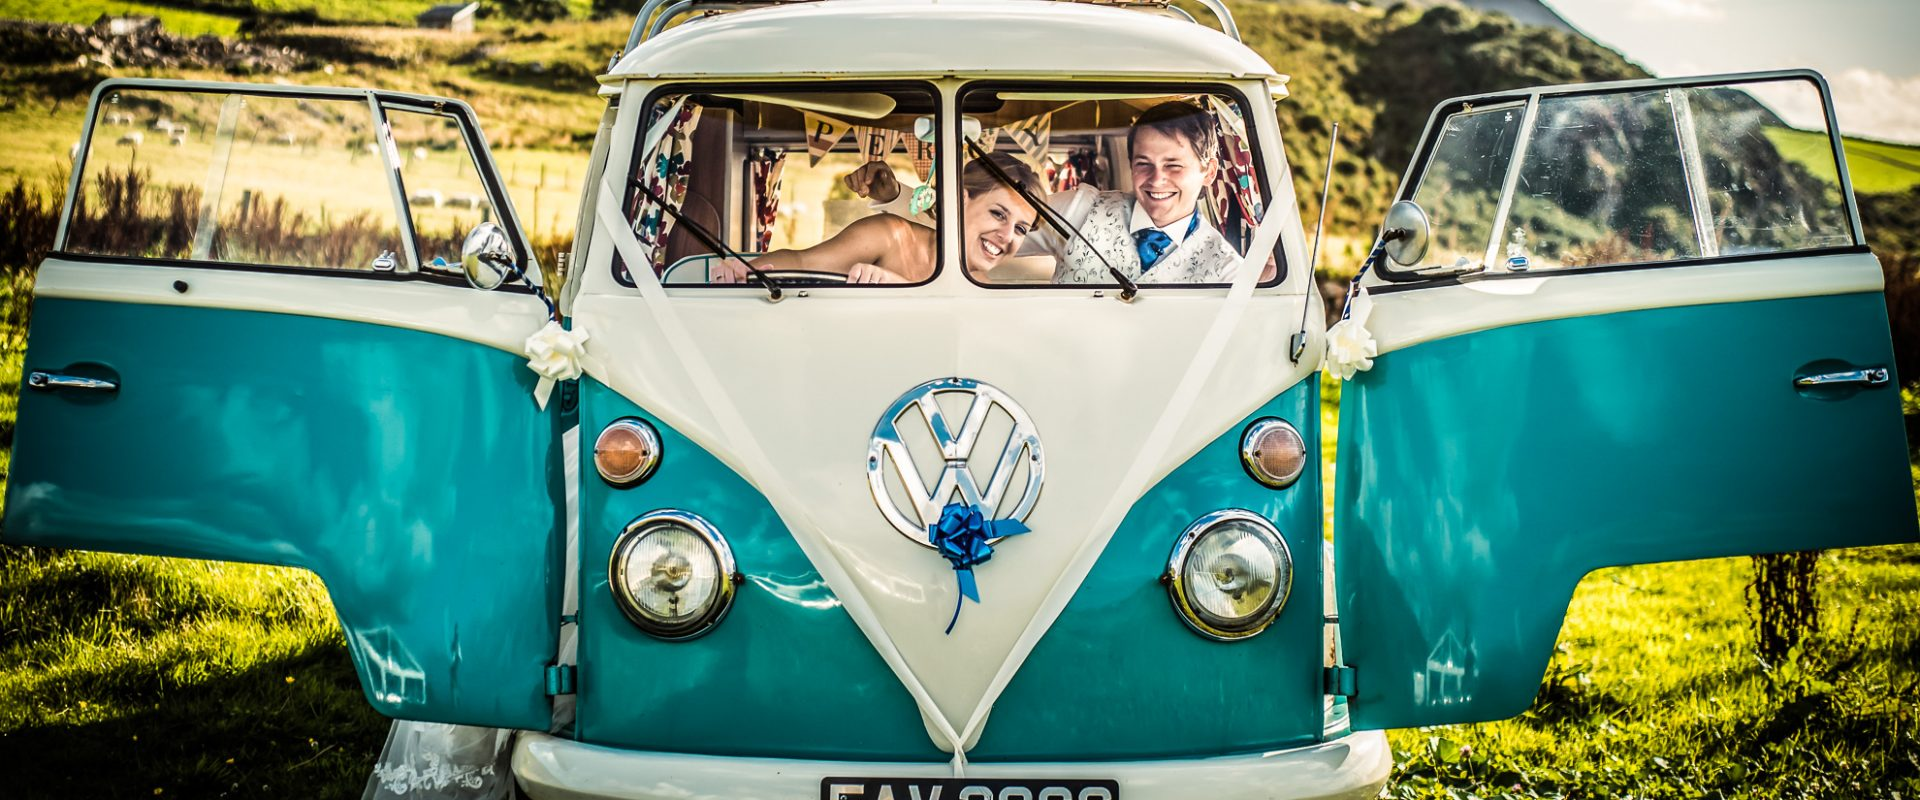 wide shot of bride and groom in VW camper van, front on, with doors open, farm and hills in background. bride is pretending to drive and leaning into groom, groom has arm around her shoulder. Both laughing and looking at camera